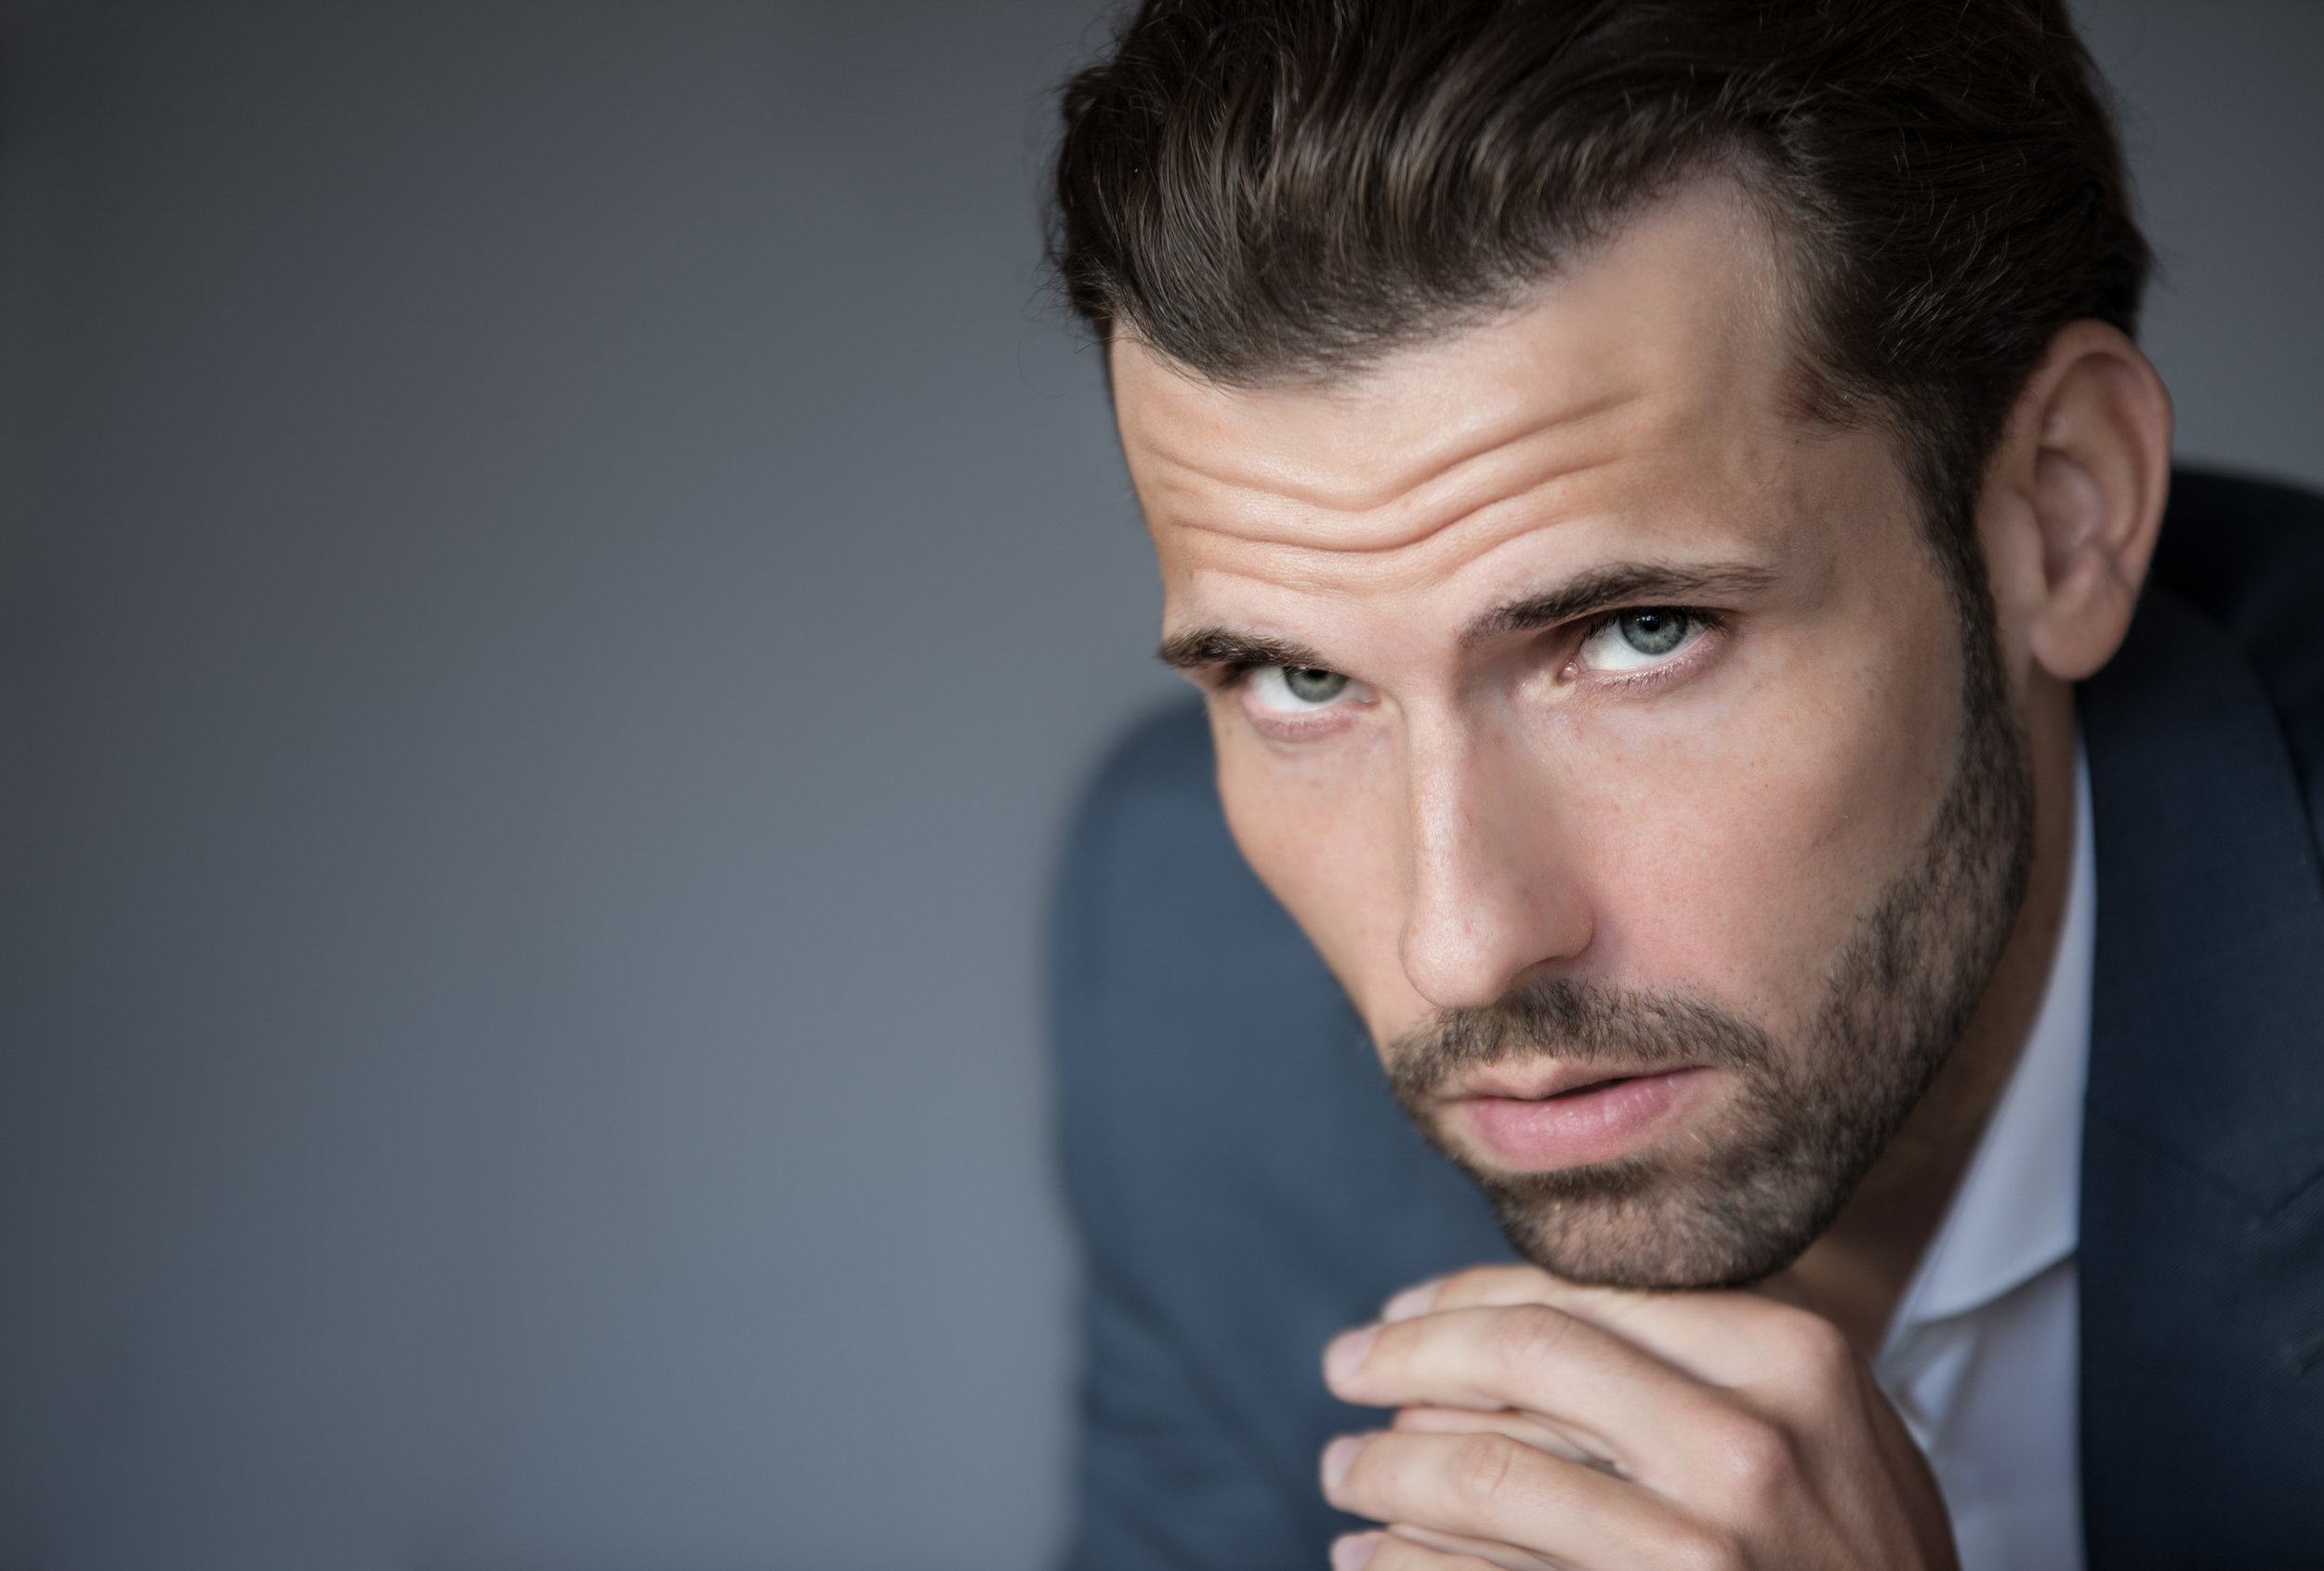 PROFESSIONAL PORTRAIT SESSION WITH AN ACTOR -